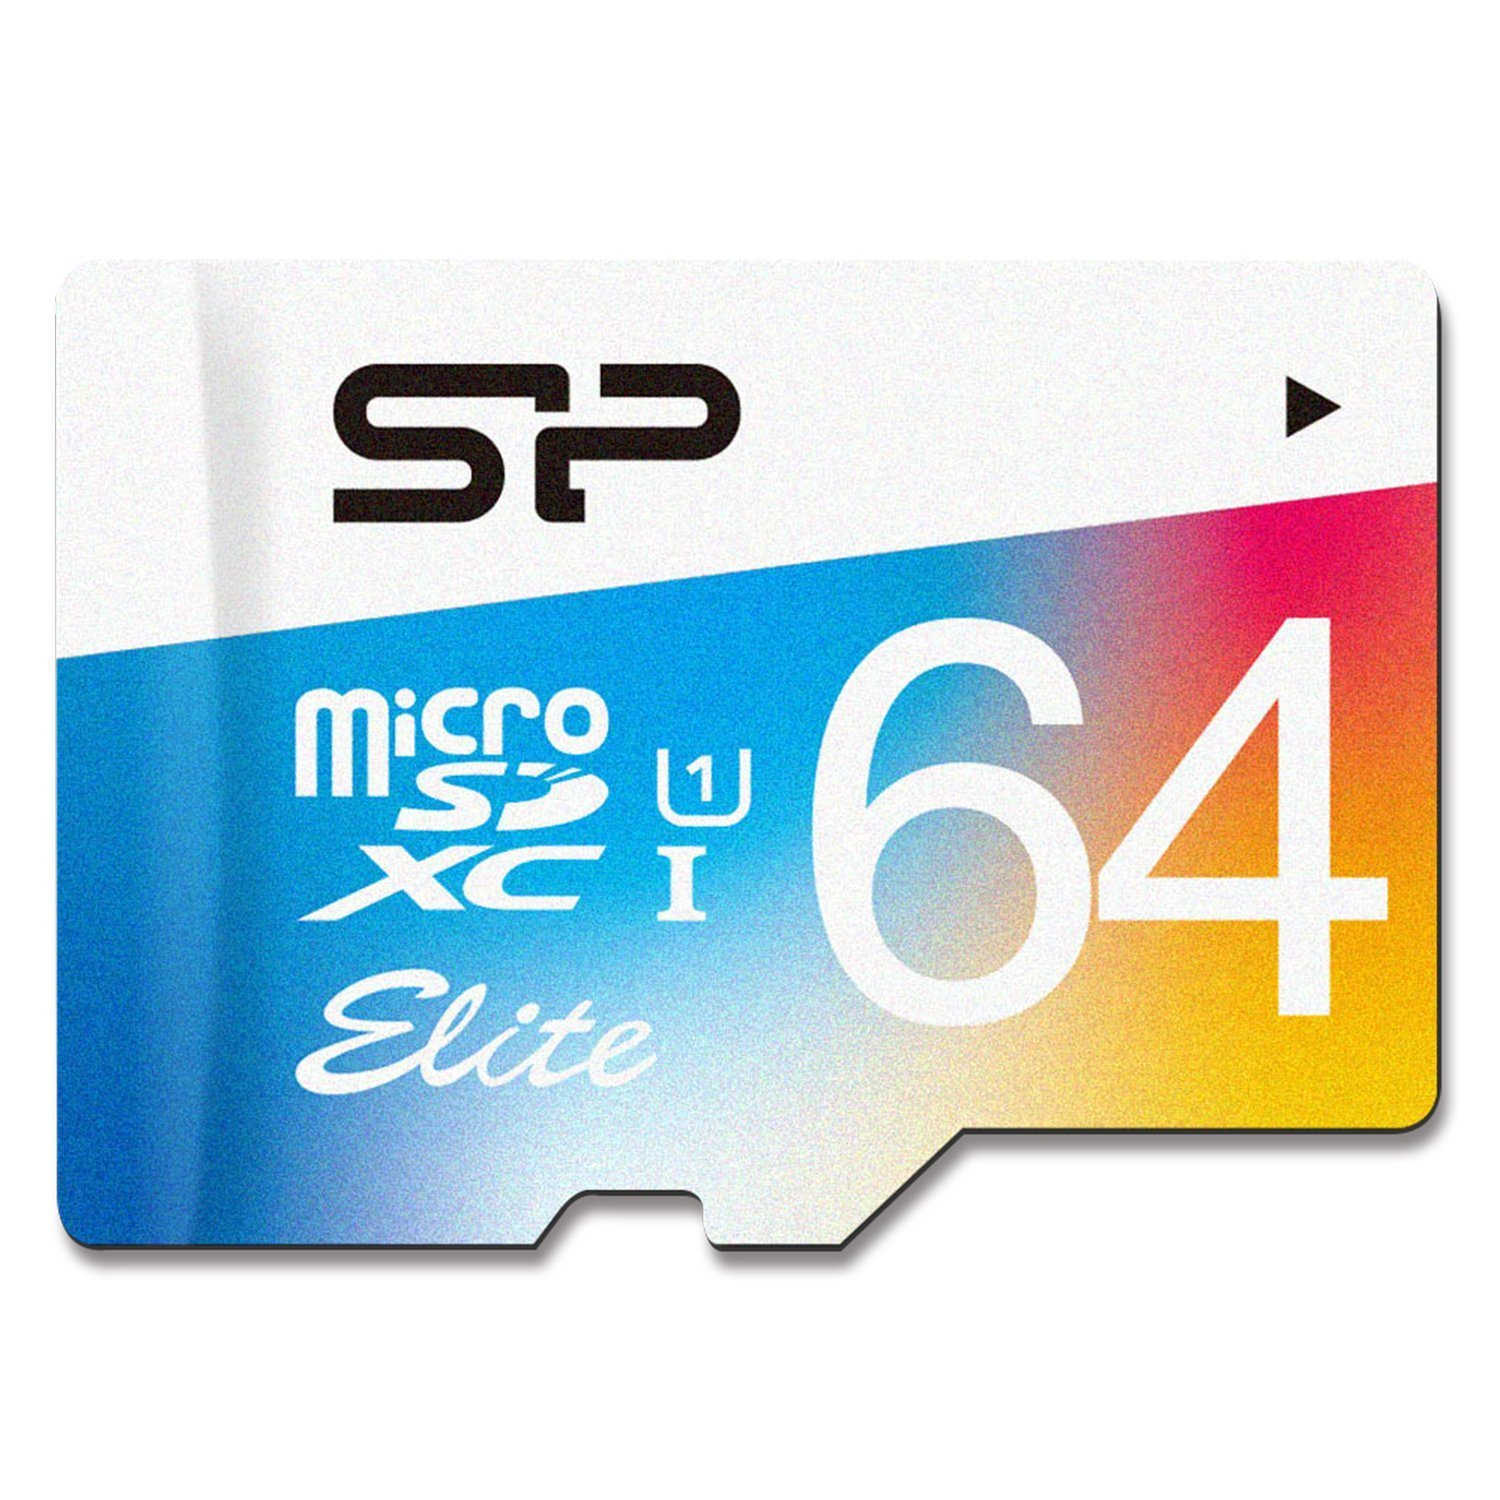 Silicon Power 64GB MicroSDHC UHS-1 Memory Card Adapter (SP064GBSTXBU1V20AI)